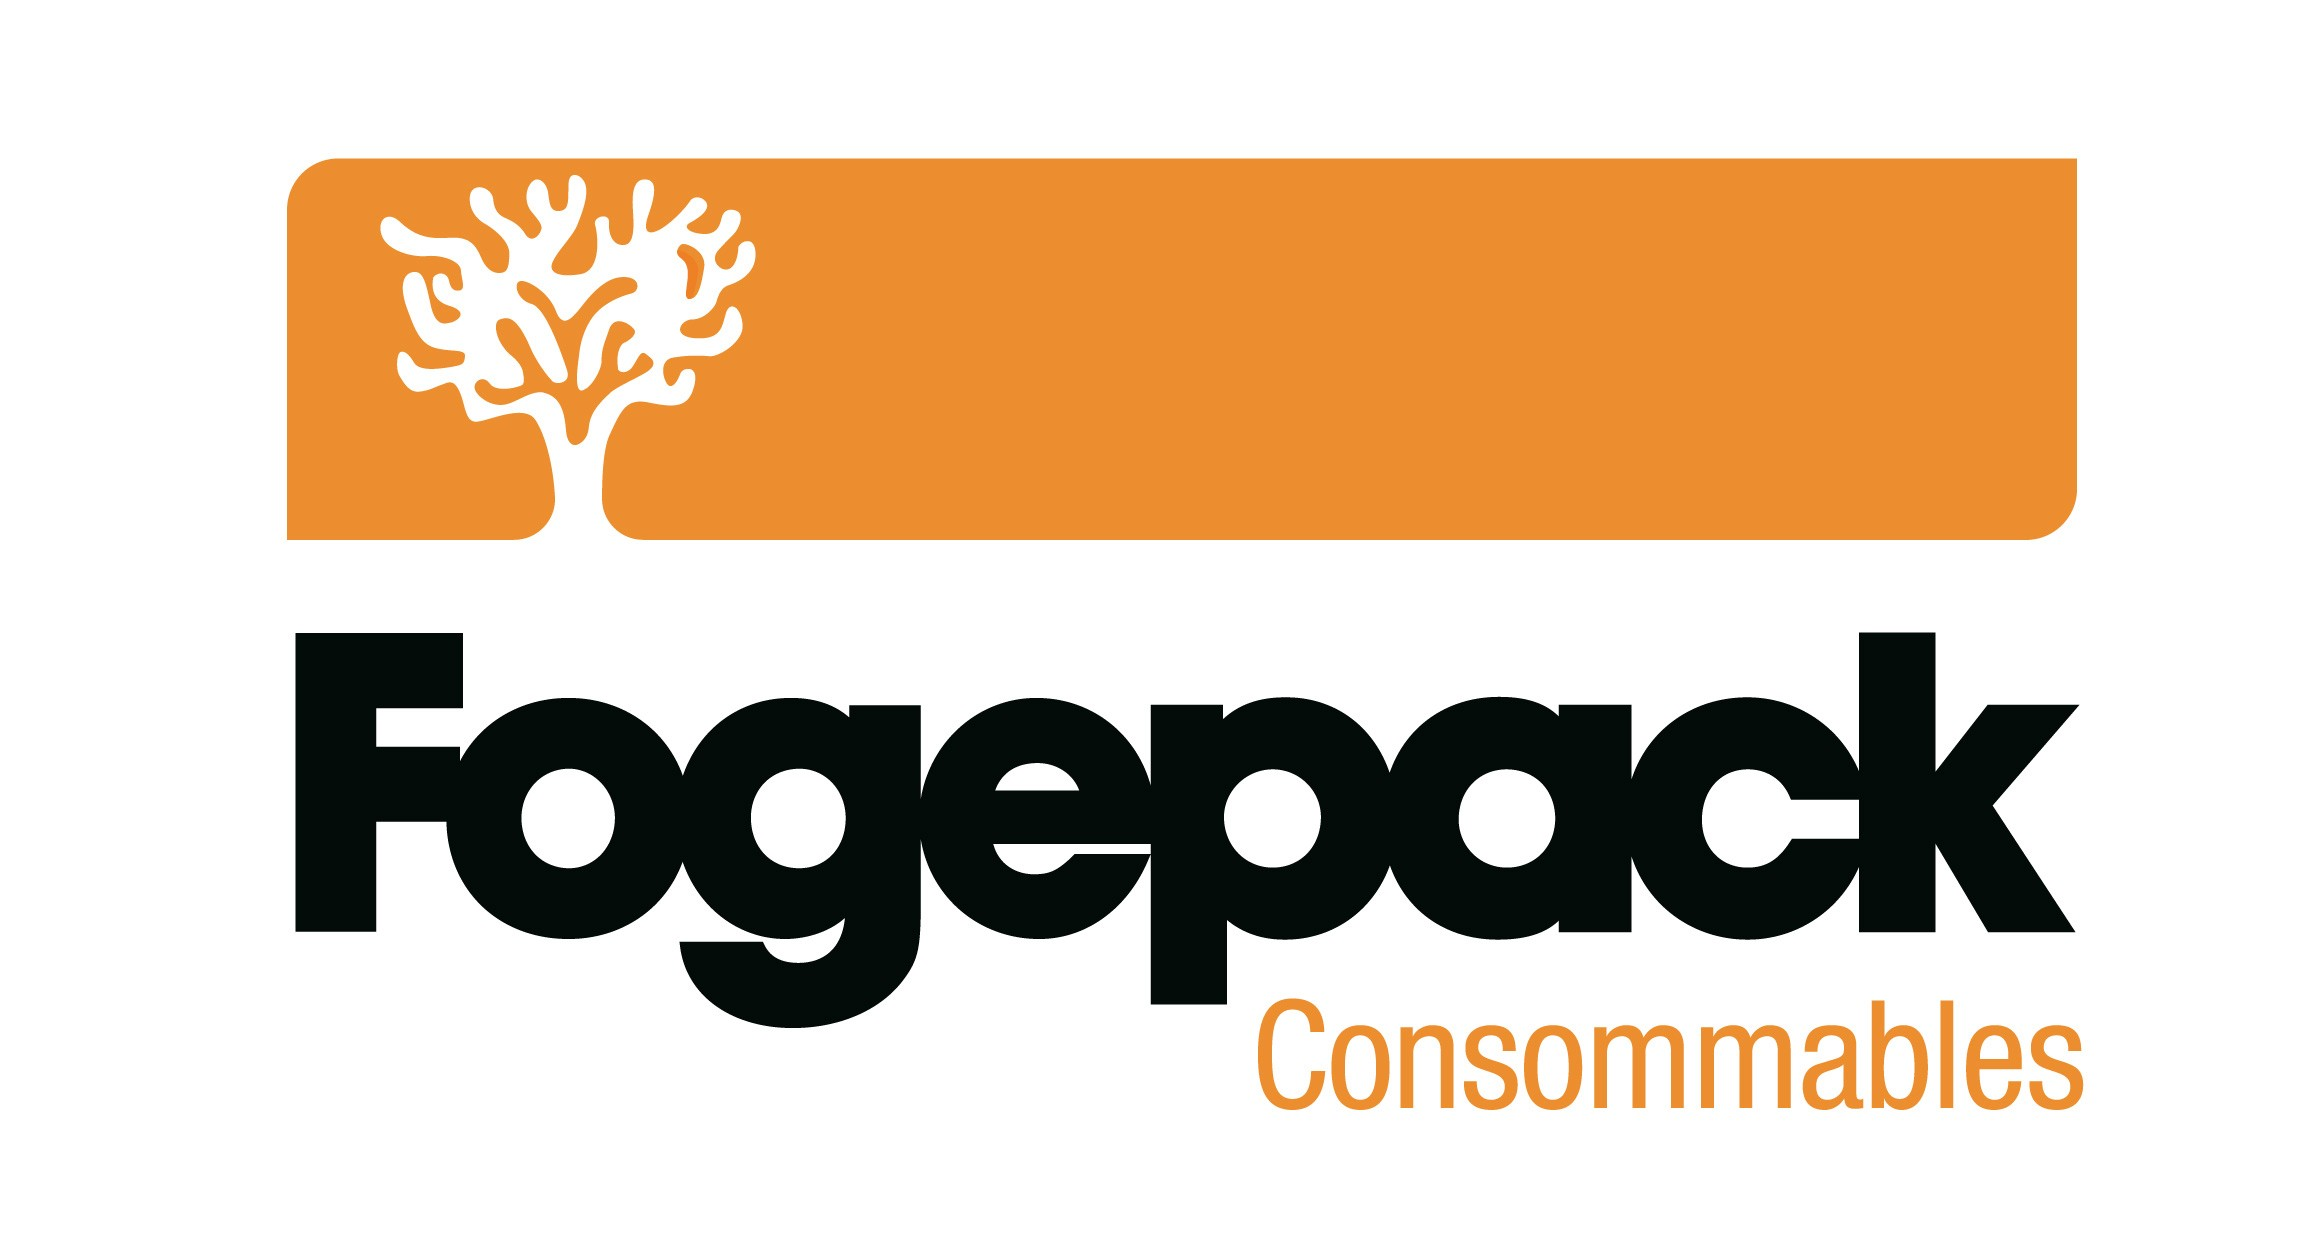 Fogepack consommables